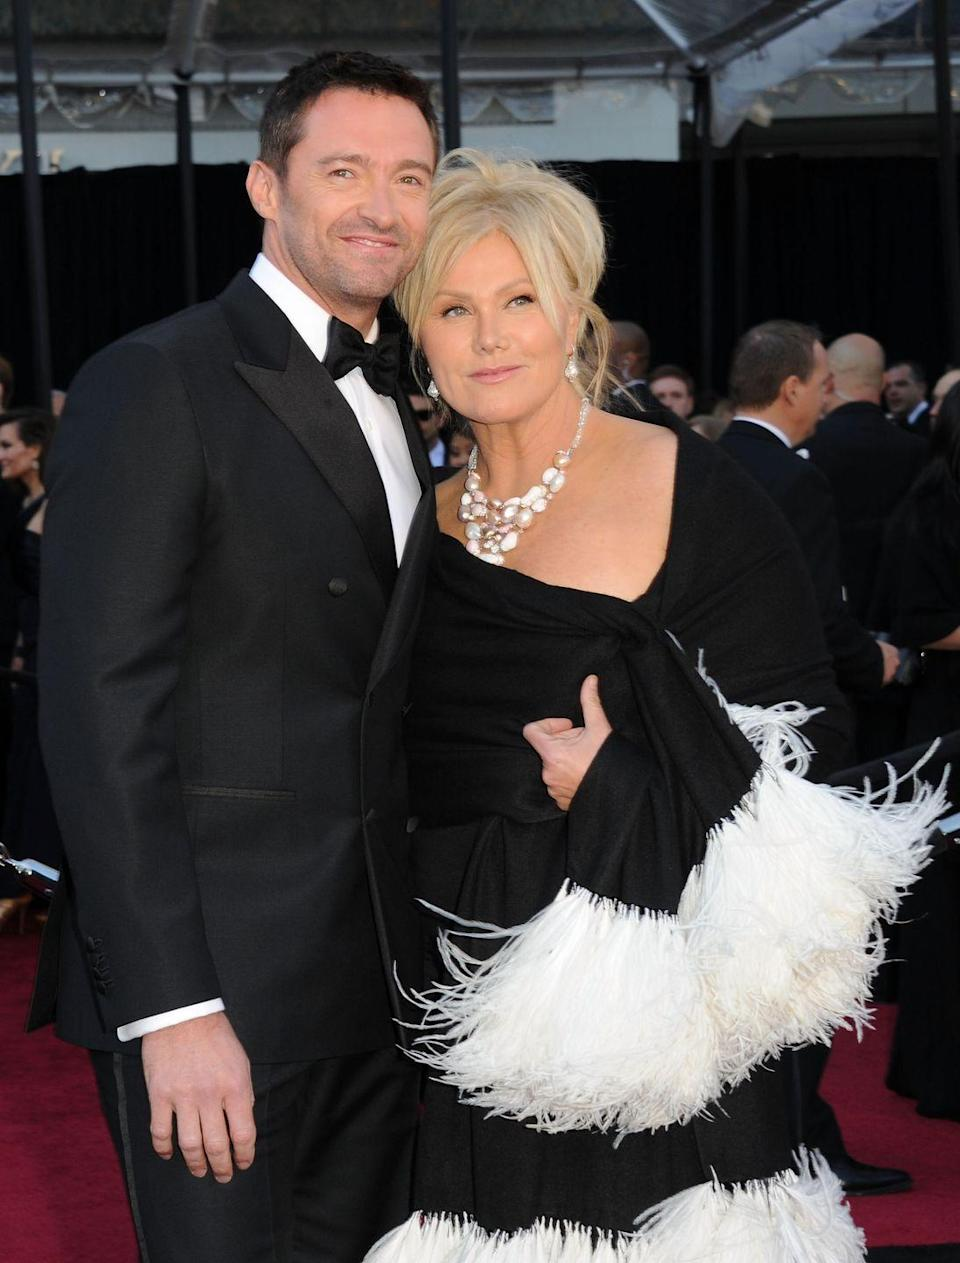 """<p><strong>Age gap: </strong>13 years</p><p><a href=""""https://www.goodhousekeeping.com/life/relationships/news/a47389/hugh-jackman-wife-deborra-lee-furness/"""" rel=""""nofollow noopener"""" target=""""_blank"""" data-ylk=""""slk:Hugh met Deborra-Lee"""" class=""""link rapid-noclick-resp"""">Hugh met Deborra-Lee</a> on the set of an Australian television show called <em>Correlli</em> in 1995 and almost instantly knew he would marry her. After both admitted they had crushes on one another, they started dating, and a year later they made it official.</p>"""